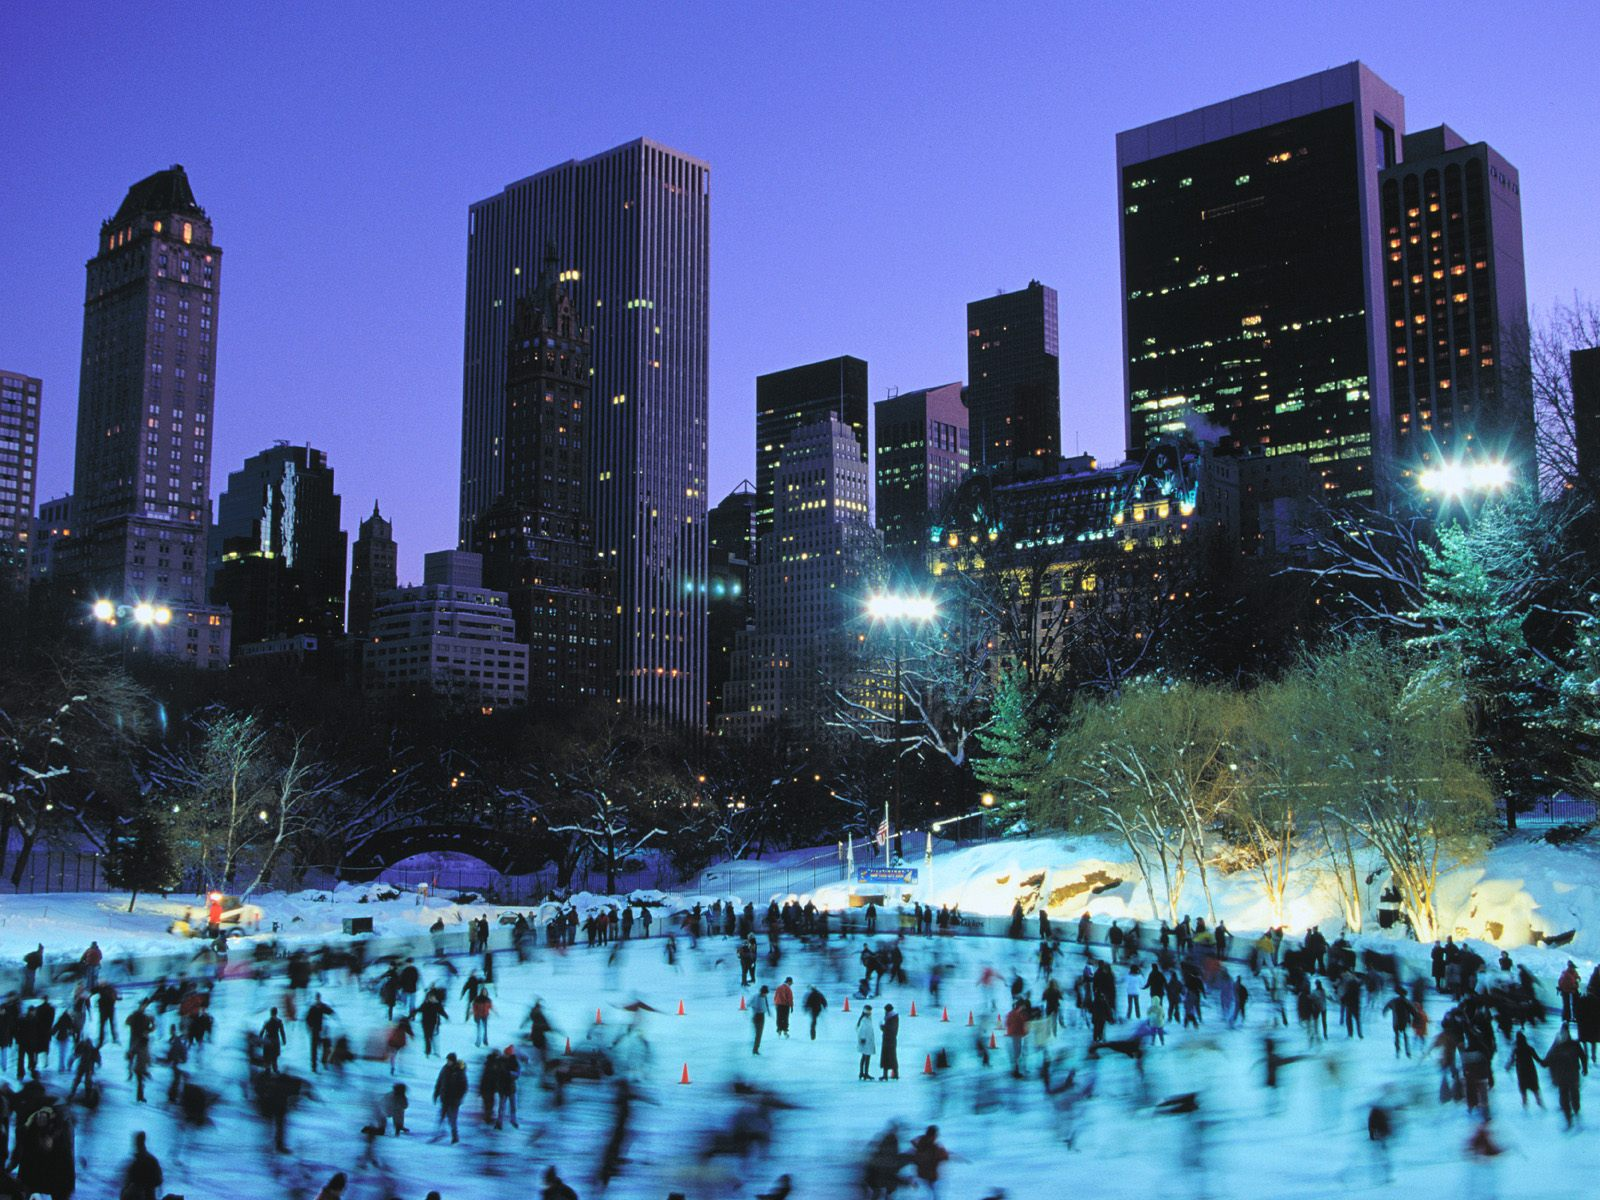 Skaters at wollman rink central park new york city ecard